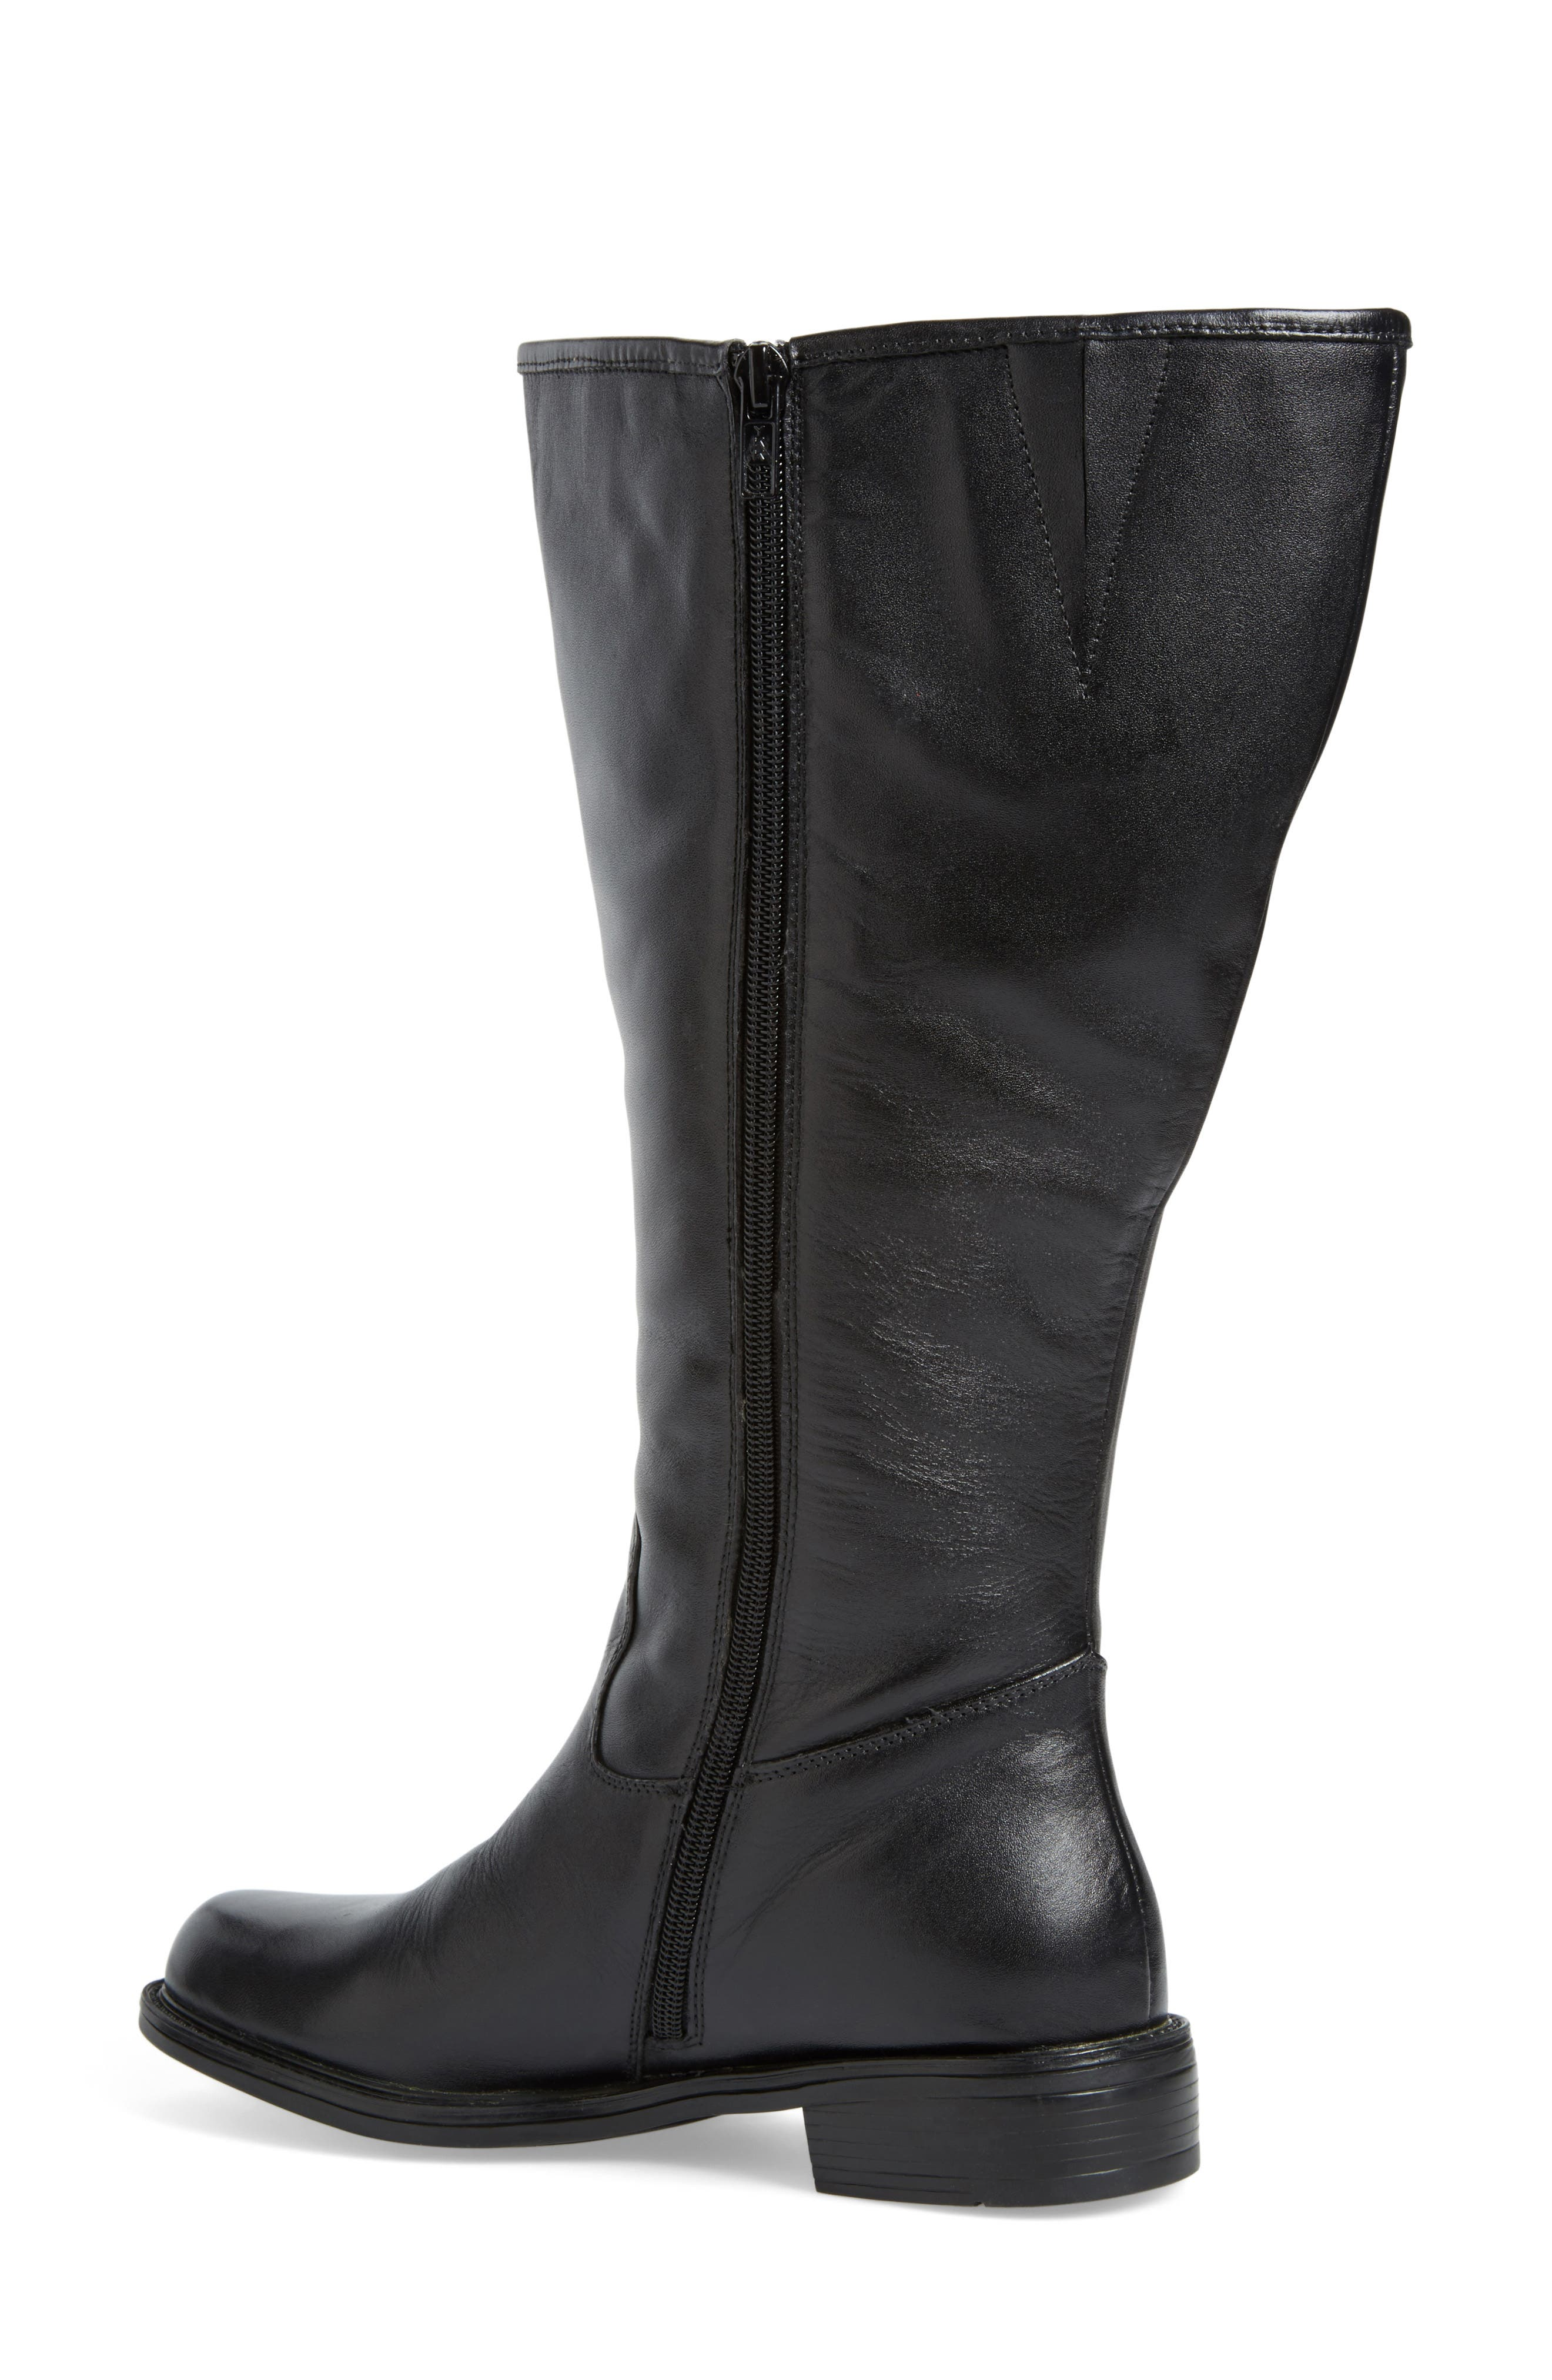 'Best' Calfskin Leather & Suede Boot,                             Alternate thumbnail 15, color,